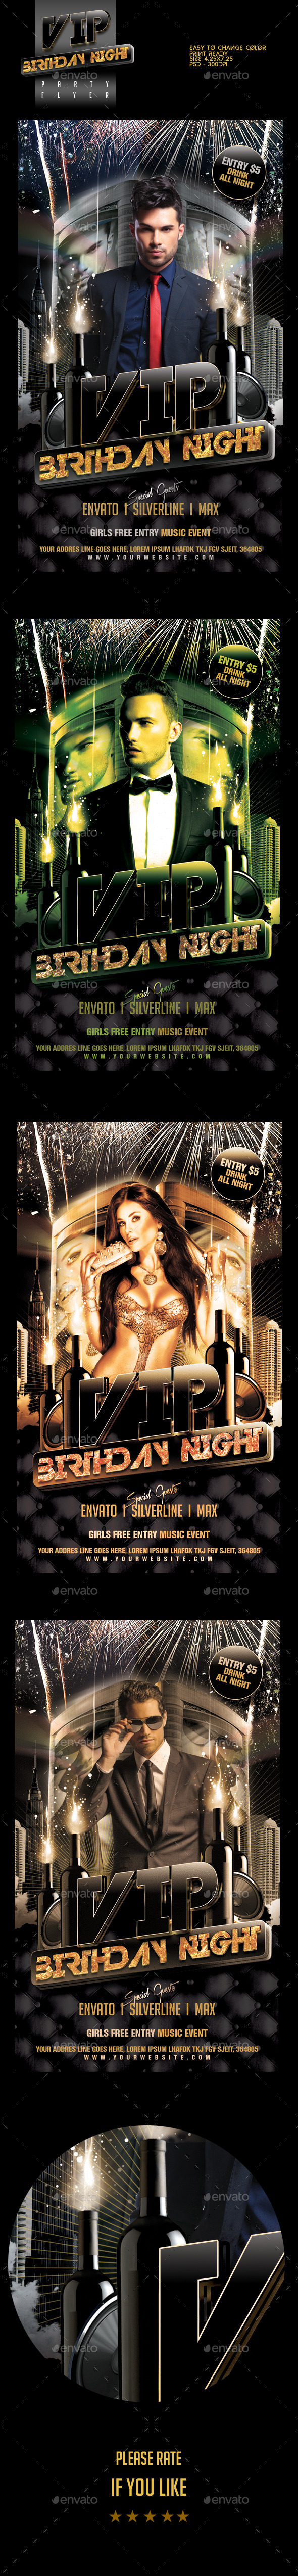 VIP Birthday Party Flyer Template - Clubs & Parties Events